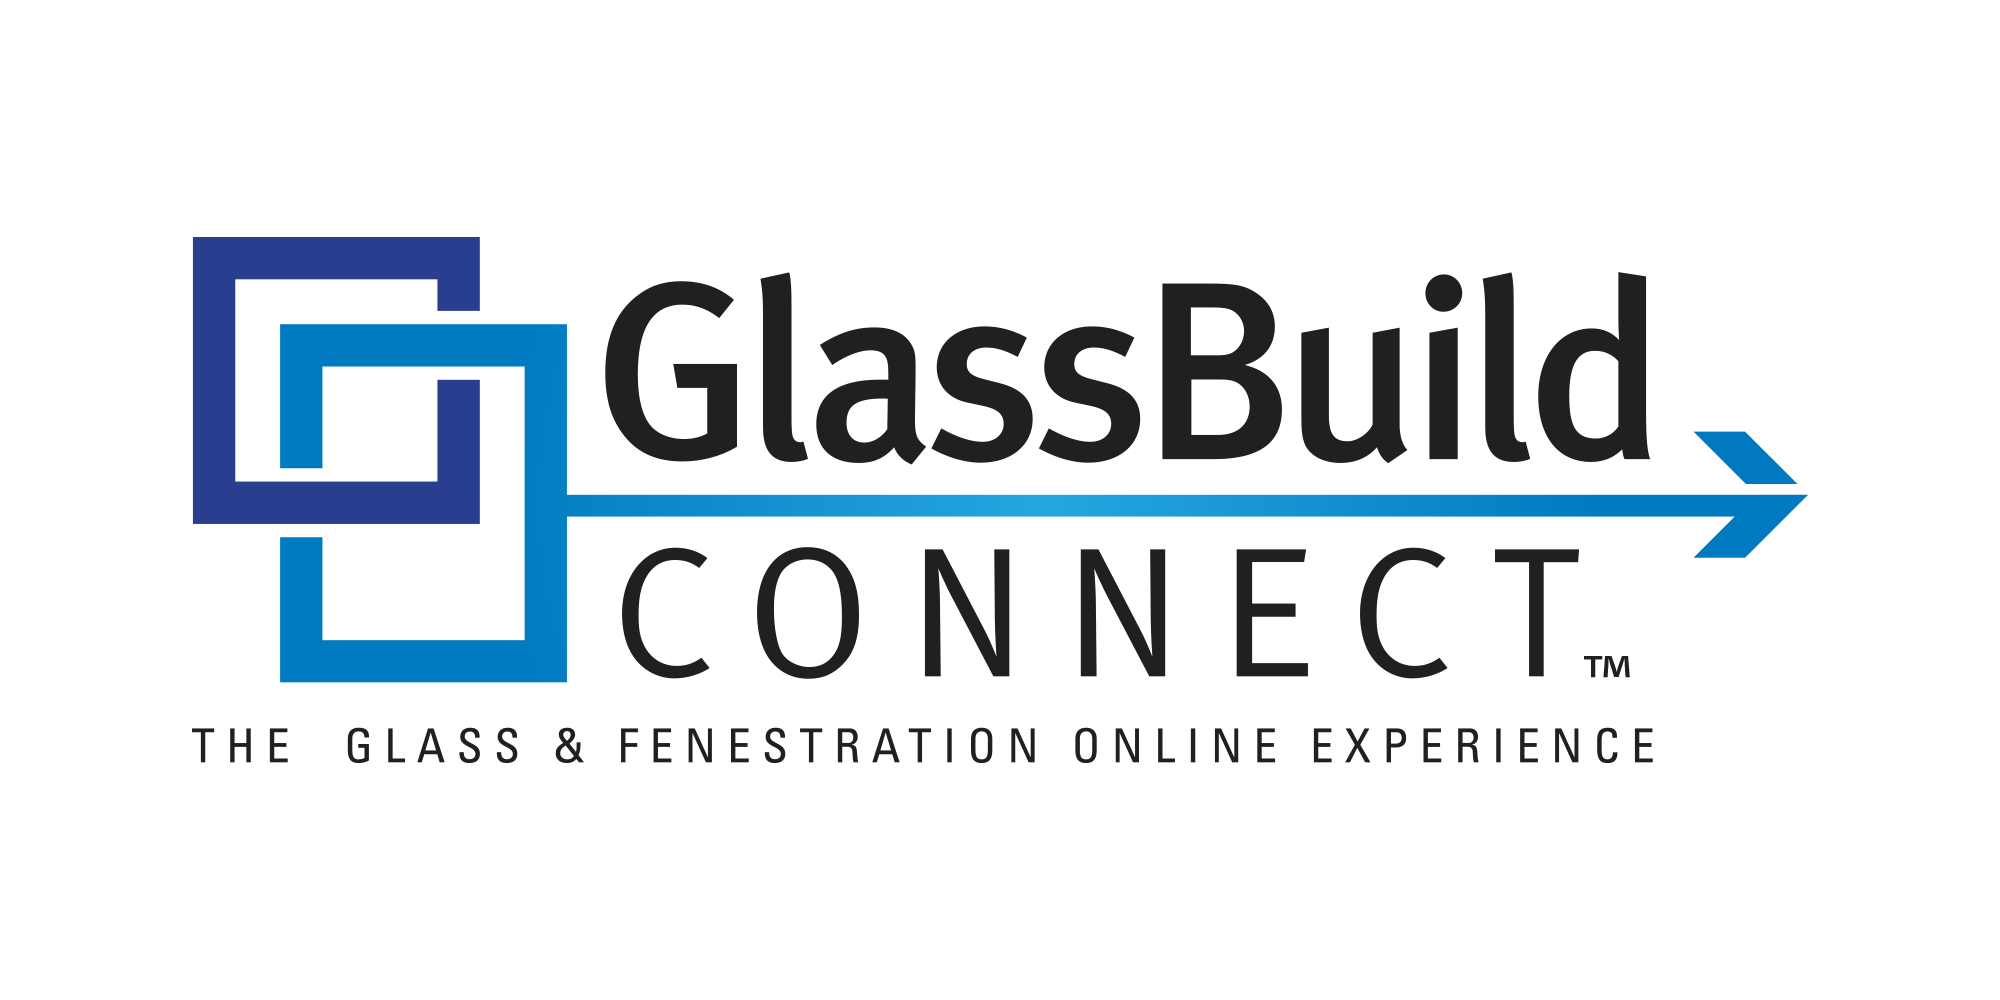 Registration Now Open for GlassBuild Connect: The Glass & Fenestration Online Experience